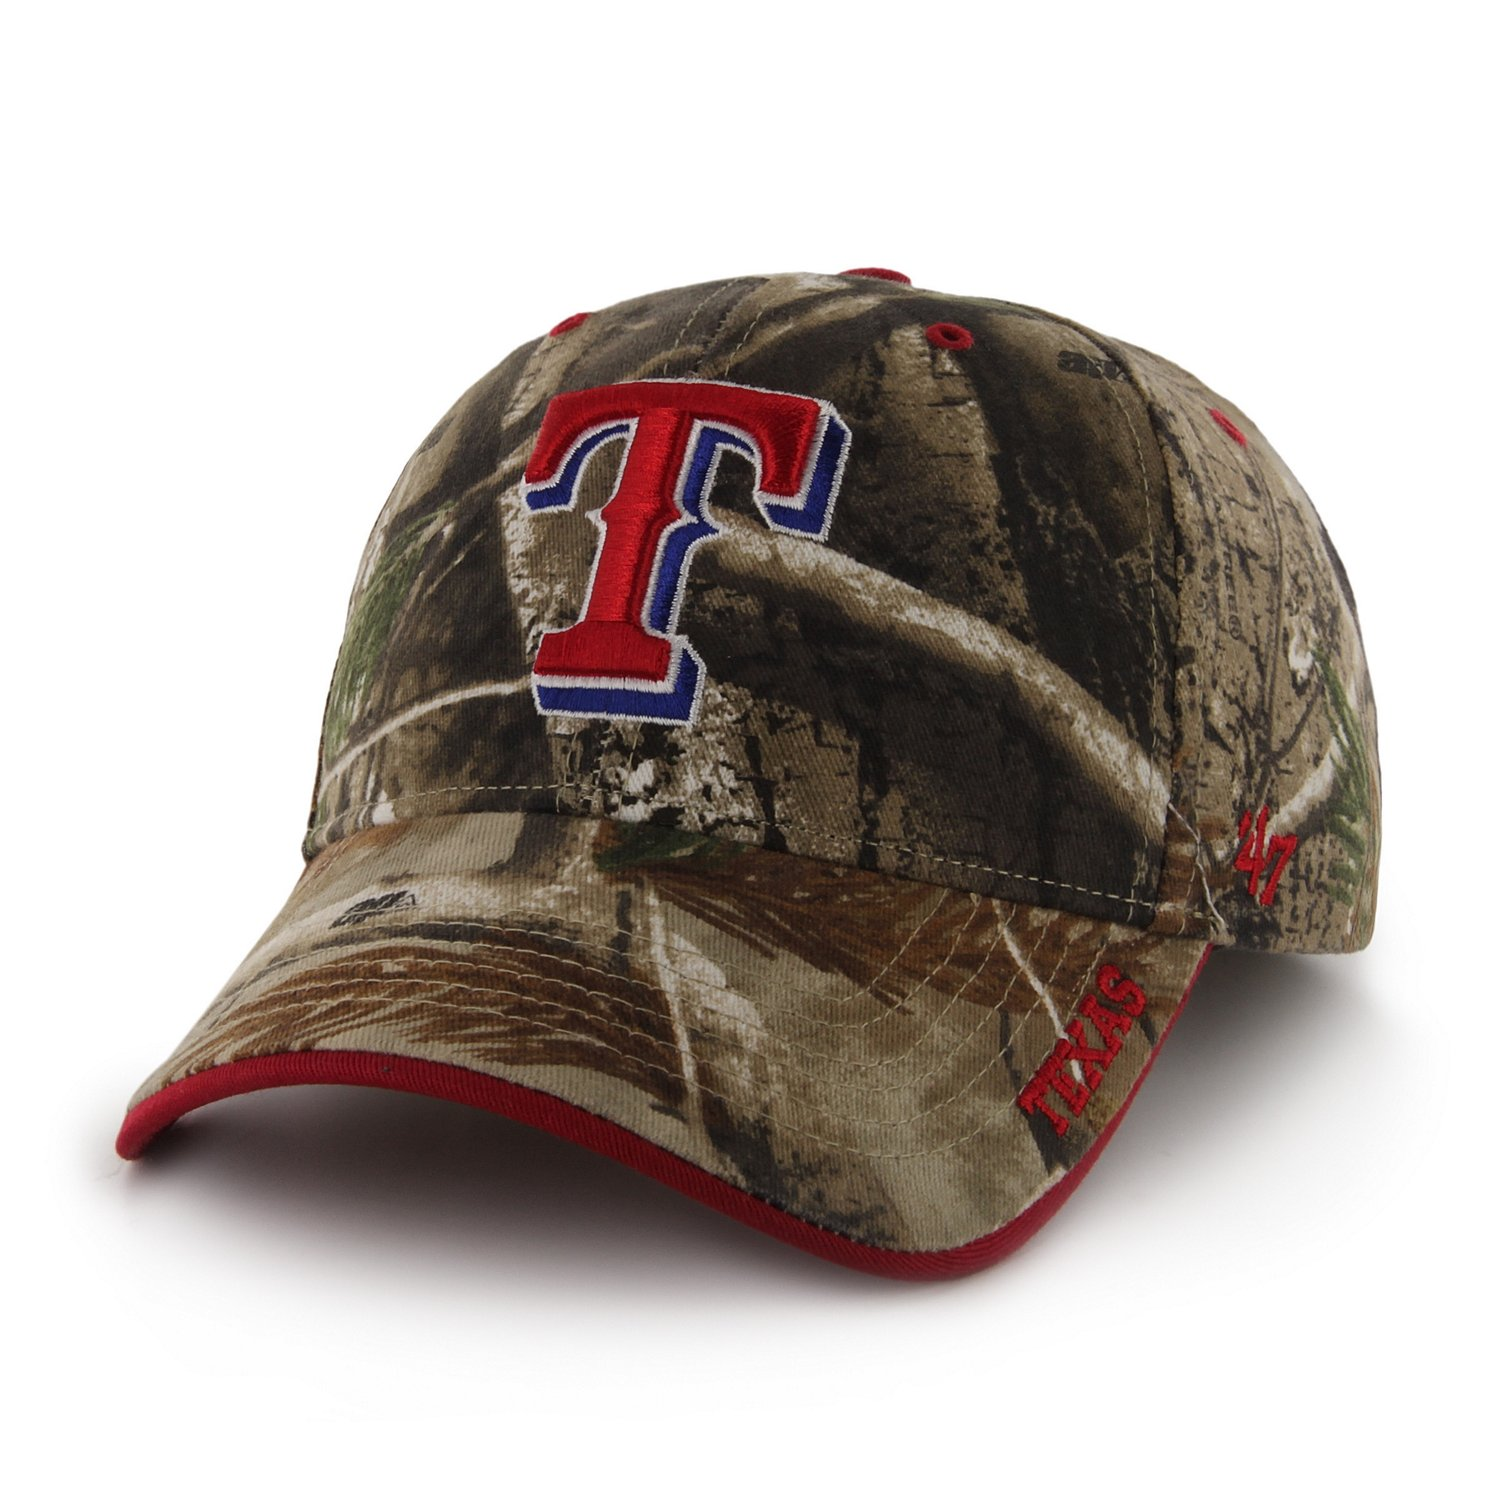 8f6d84a4db703f Display product reviews for '47 Men's Texas Rangers Realtree Frost MVP Cap